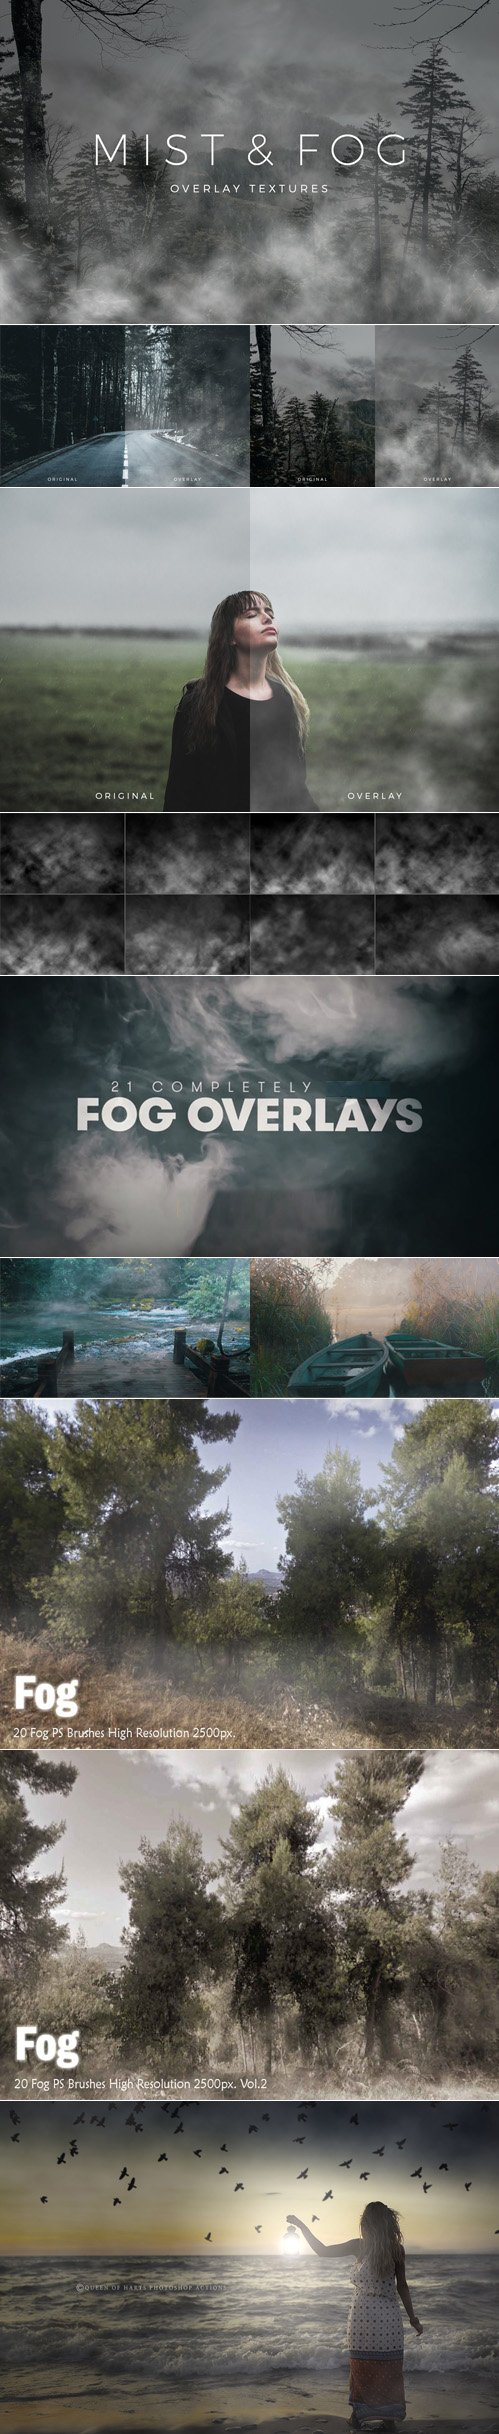 Mist & Fog Overlay [Textures/PS Brushes/4K Footages]